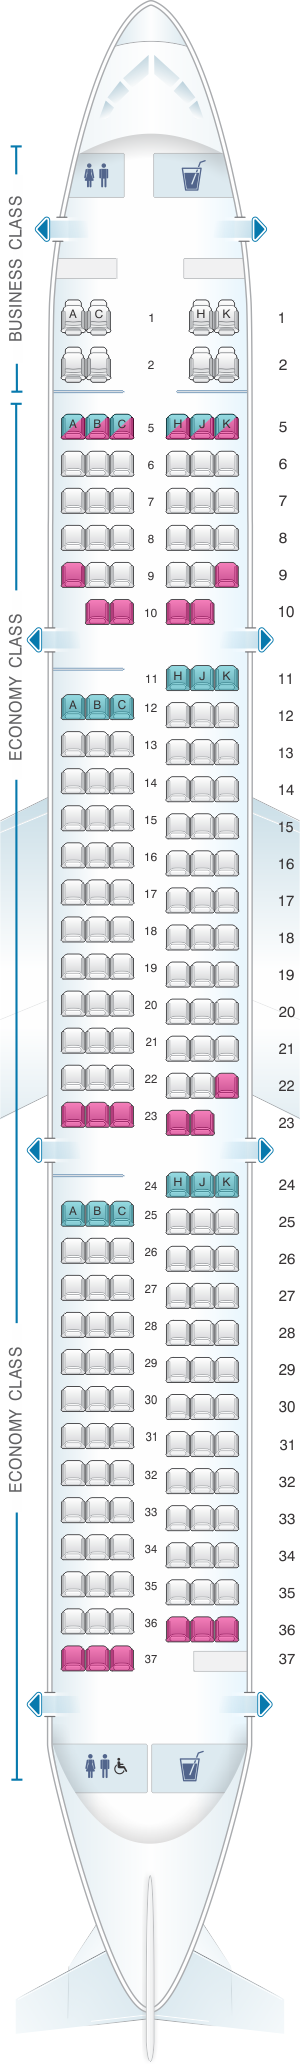 Seat map for ANA - All Nippon Airways Airbus A321 domestic